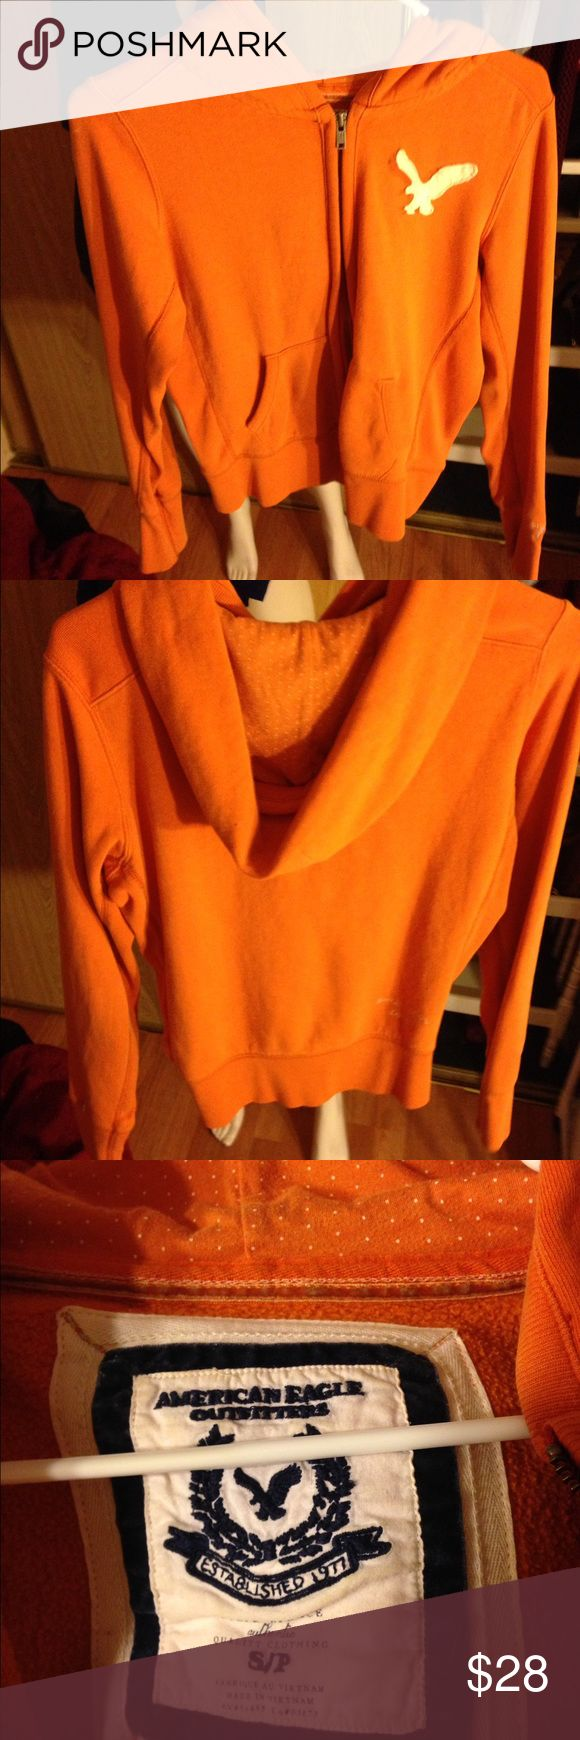 AMERICAN EAGLE OUTFITTERS Orange Hoodie Jacket Cute AMERICAN EAGLE OUTFITTERS Hoodie Jacket. Orange/ White color. Size Small woman's. Great condition. American Eagle Outfitters Jackets & Coats